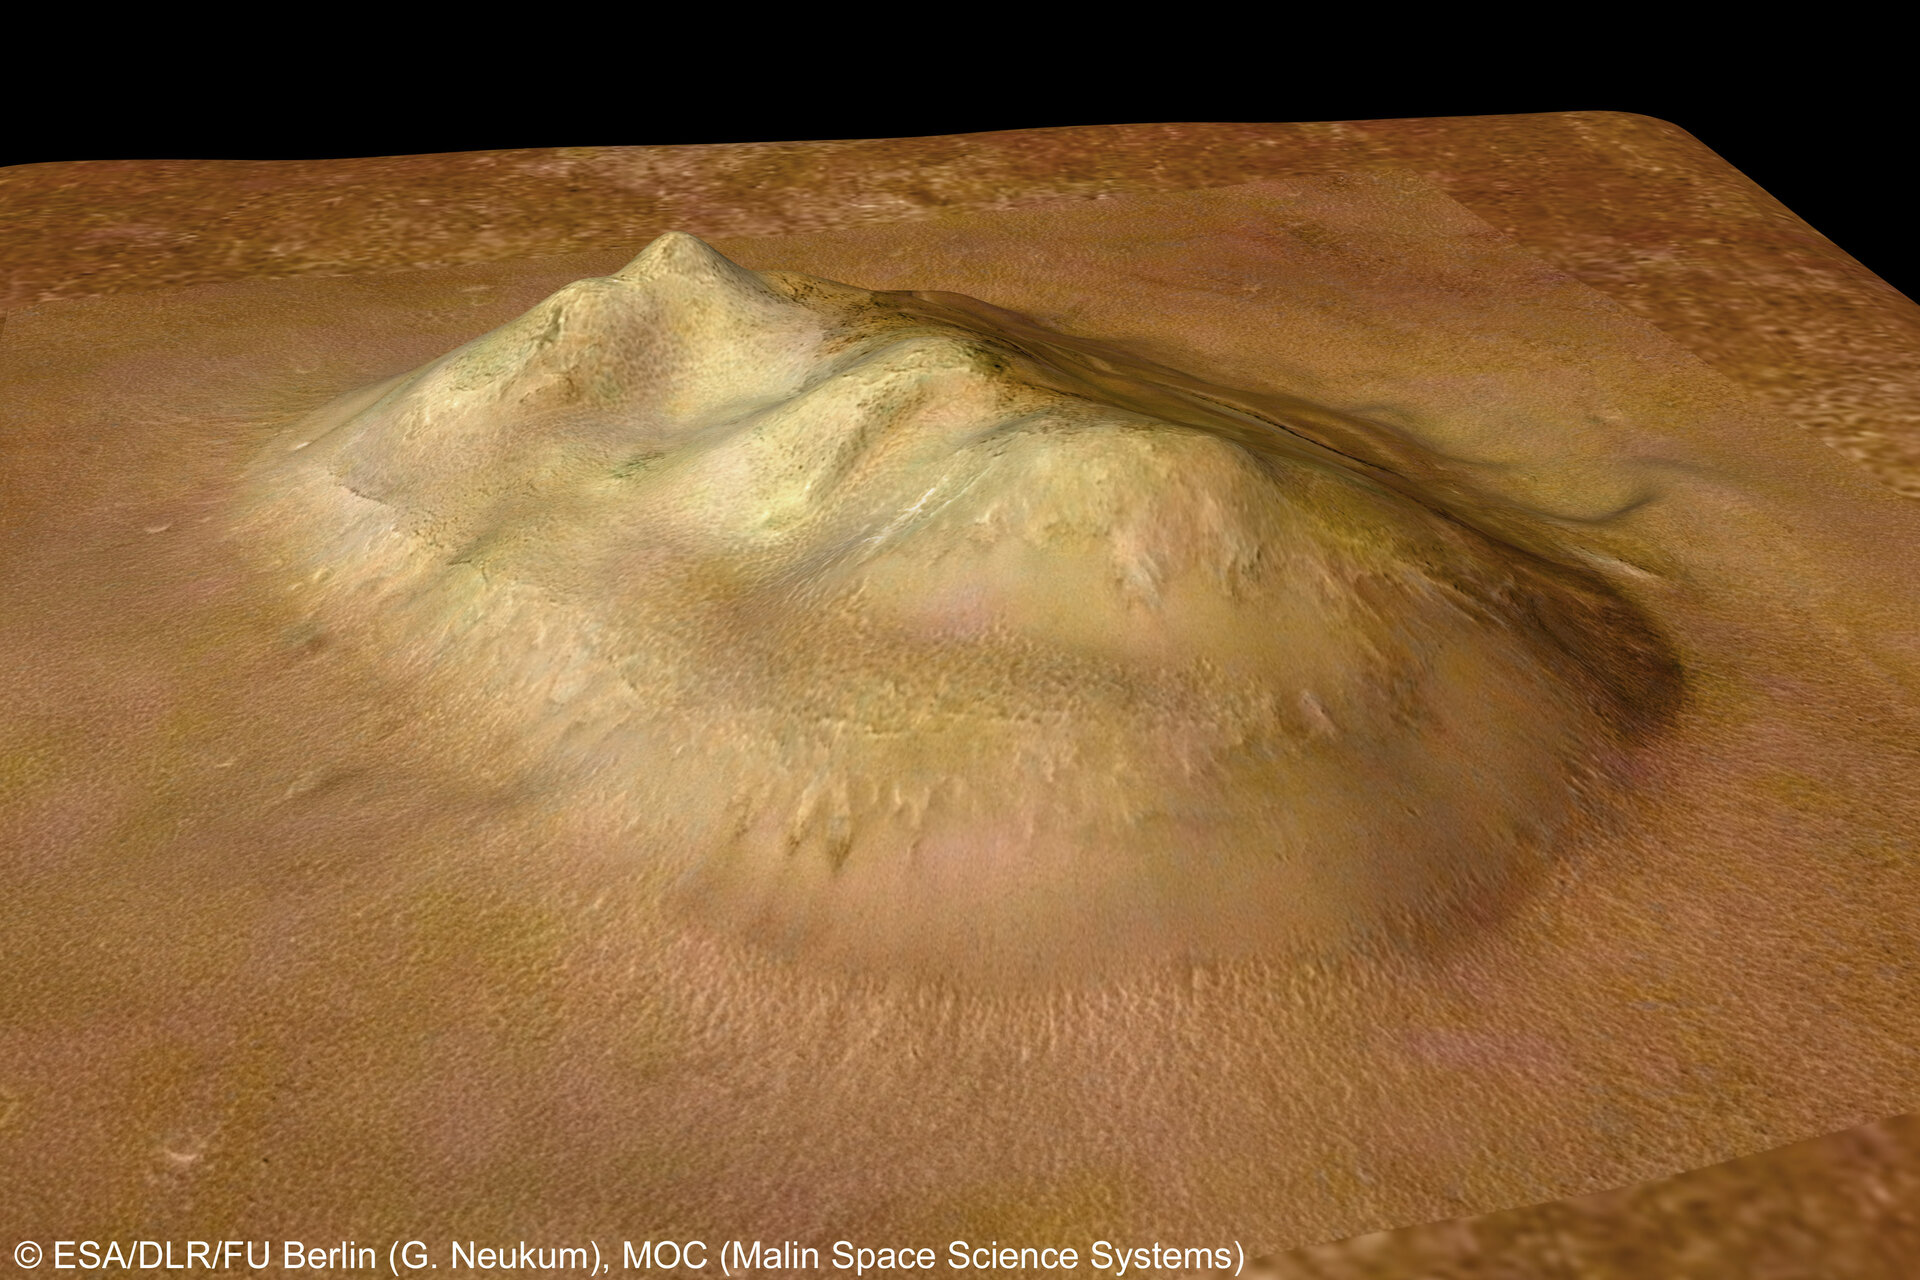 'Face on Mars' in Cydonia region